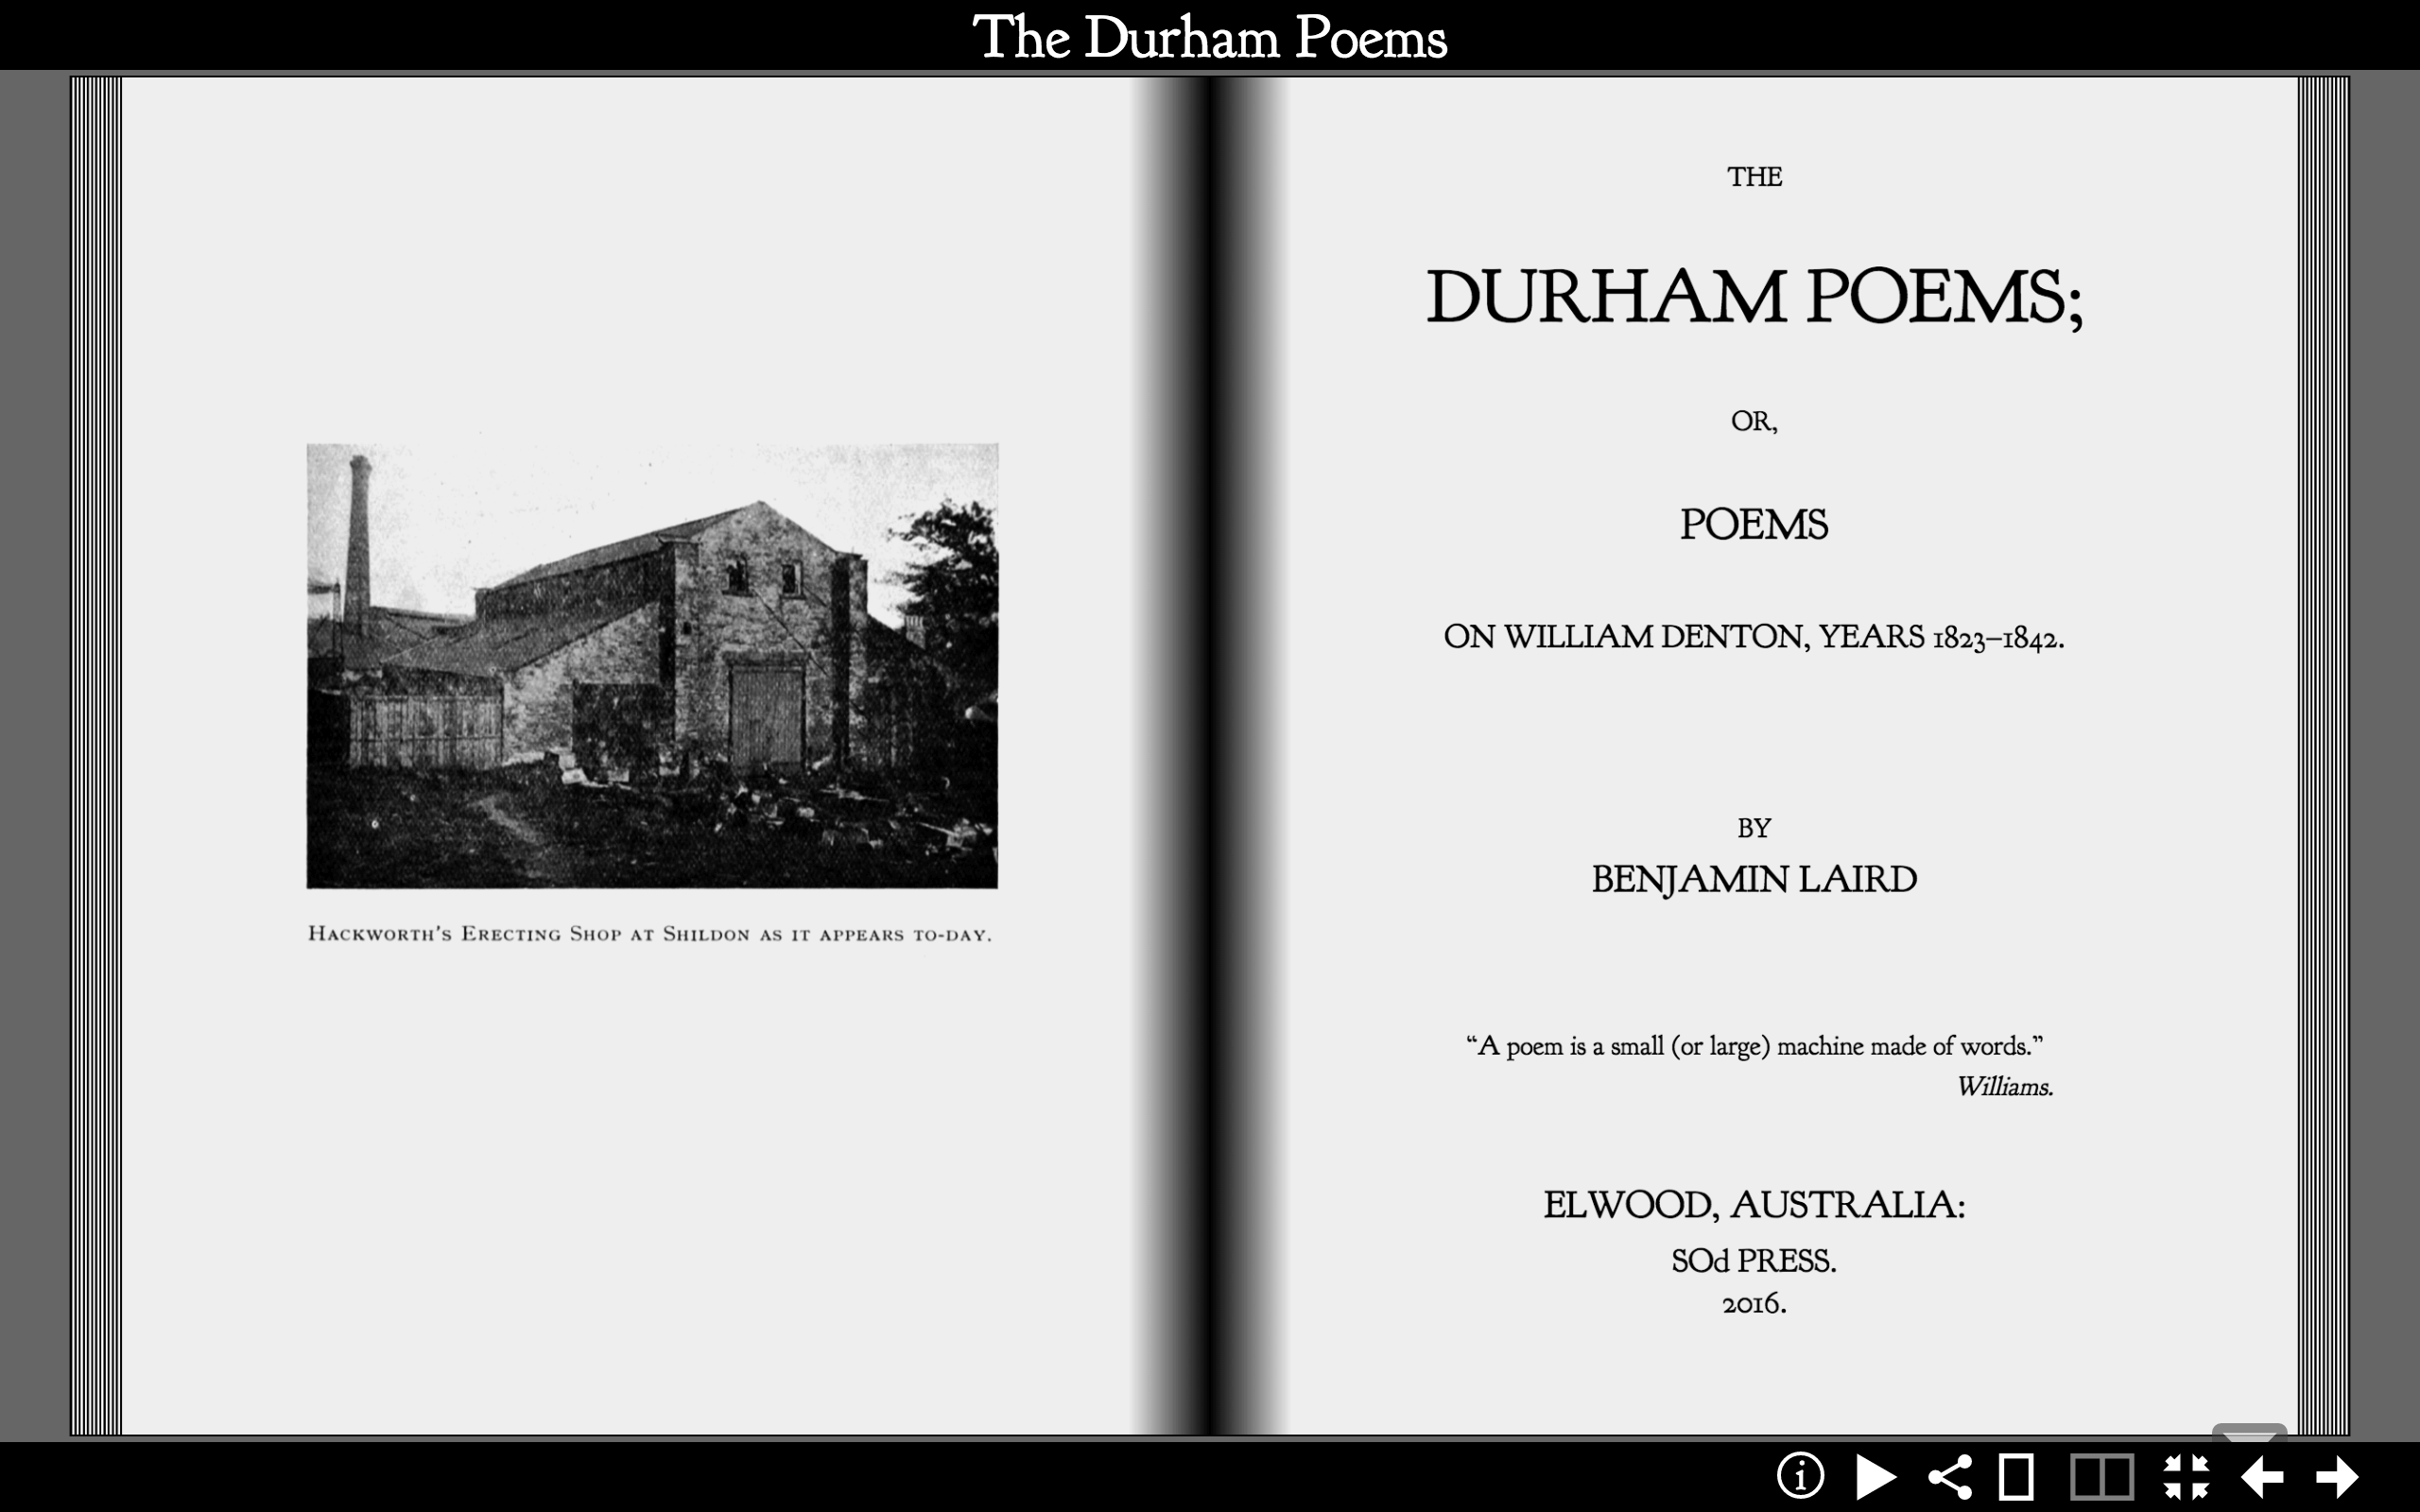 The Durham Poems